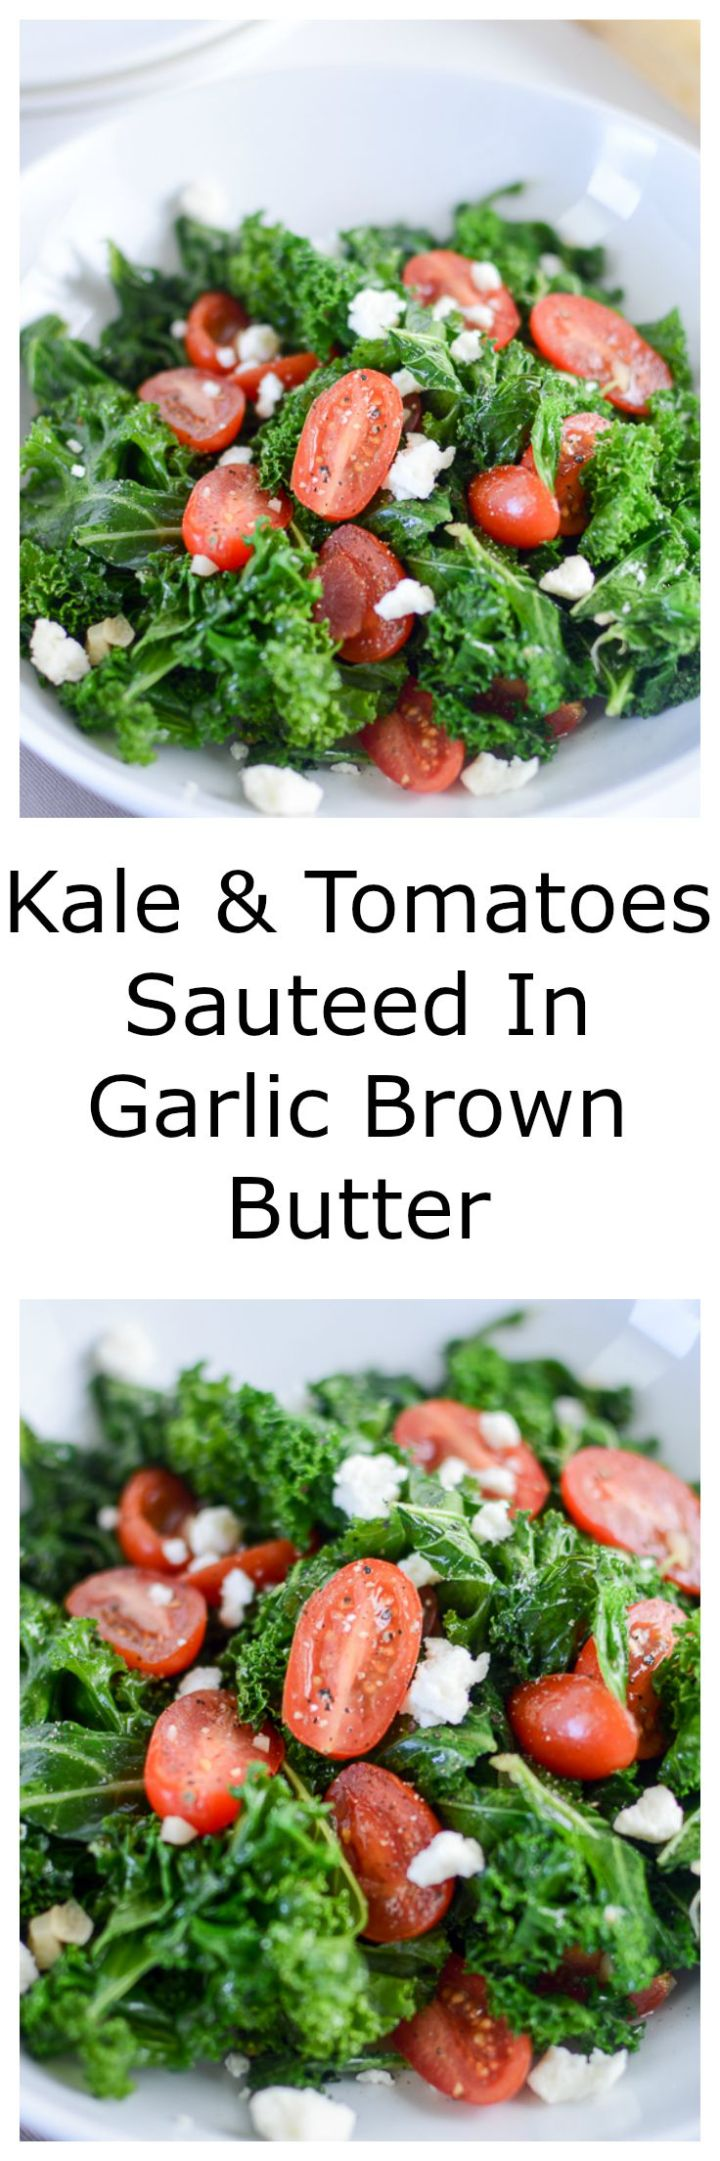 kale & tomatoes sauteed in garlic brown butter